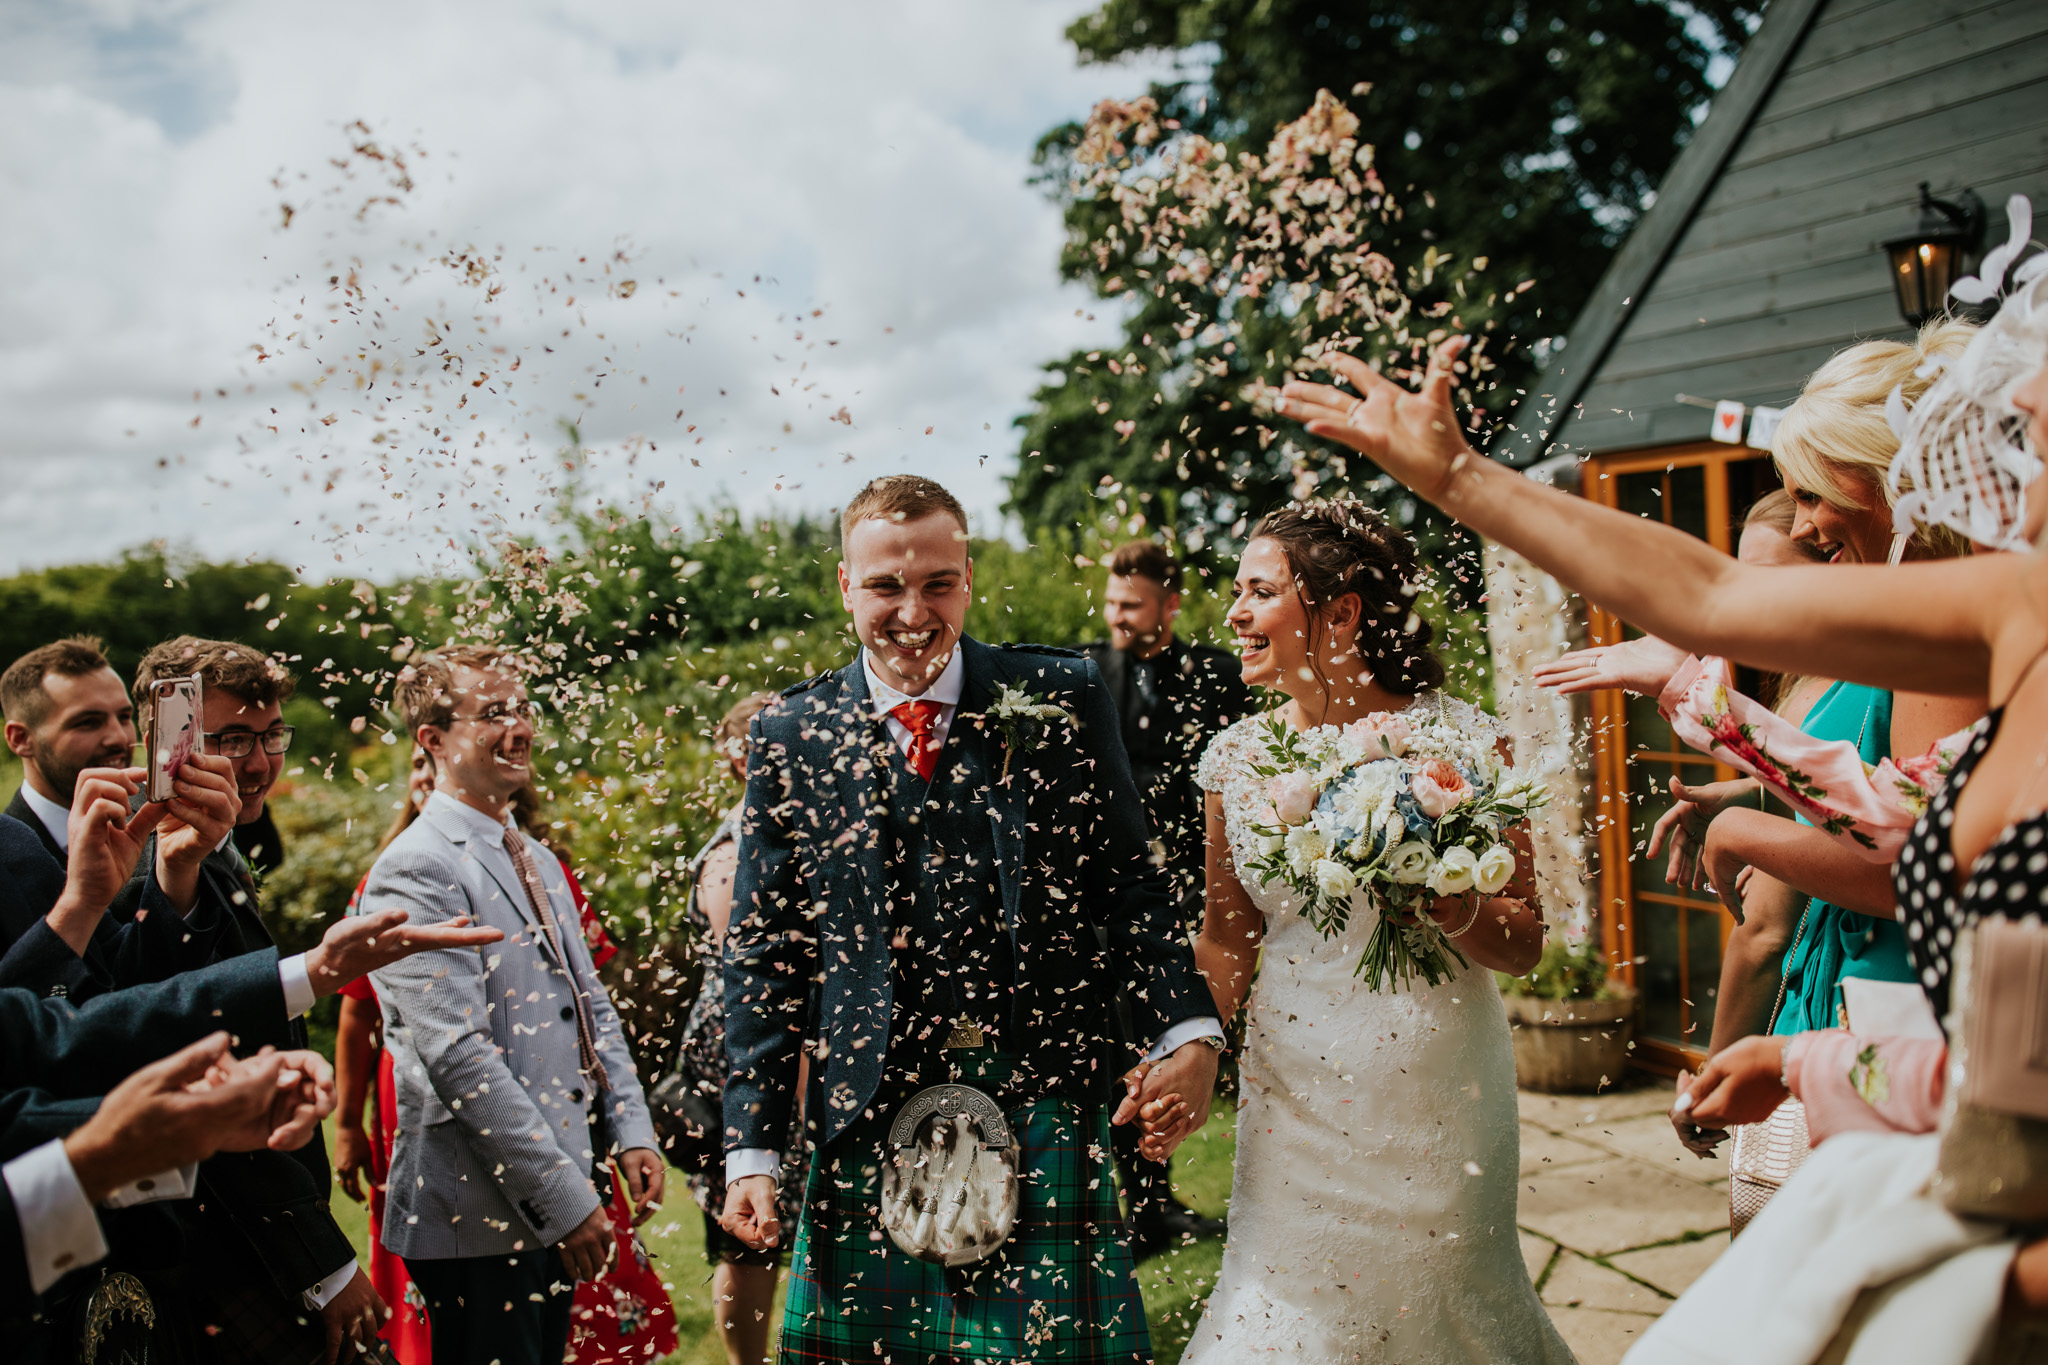 Photograph - Ross Alexander Photography (details on Suppliers page)